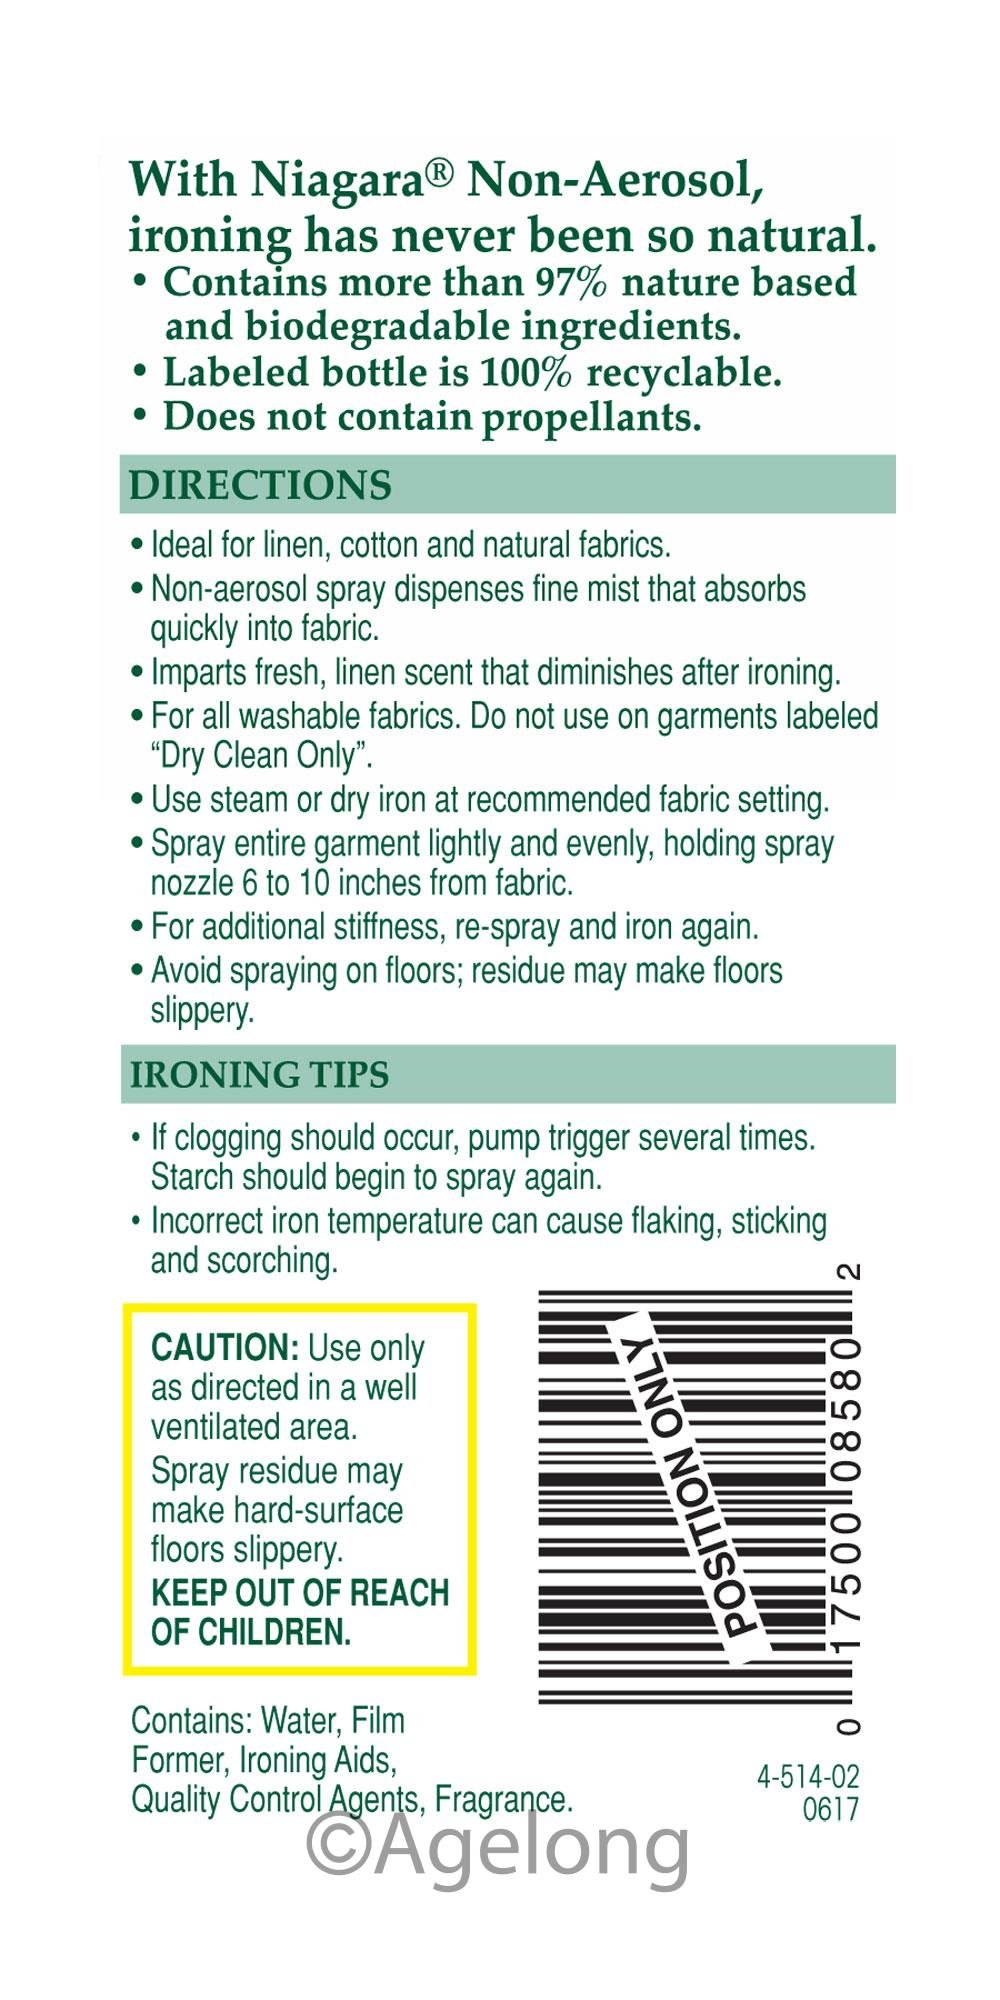 Niagara Spray Starch (22 Oz, 12 Pack) Trigger Pump Liquid Starch for Ironing, Non-Aerosol Spray on Starch, Reduces Ironing Time, No Flaking, Sticking or Clogging, Biodegradable Ingredients, Recyclable